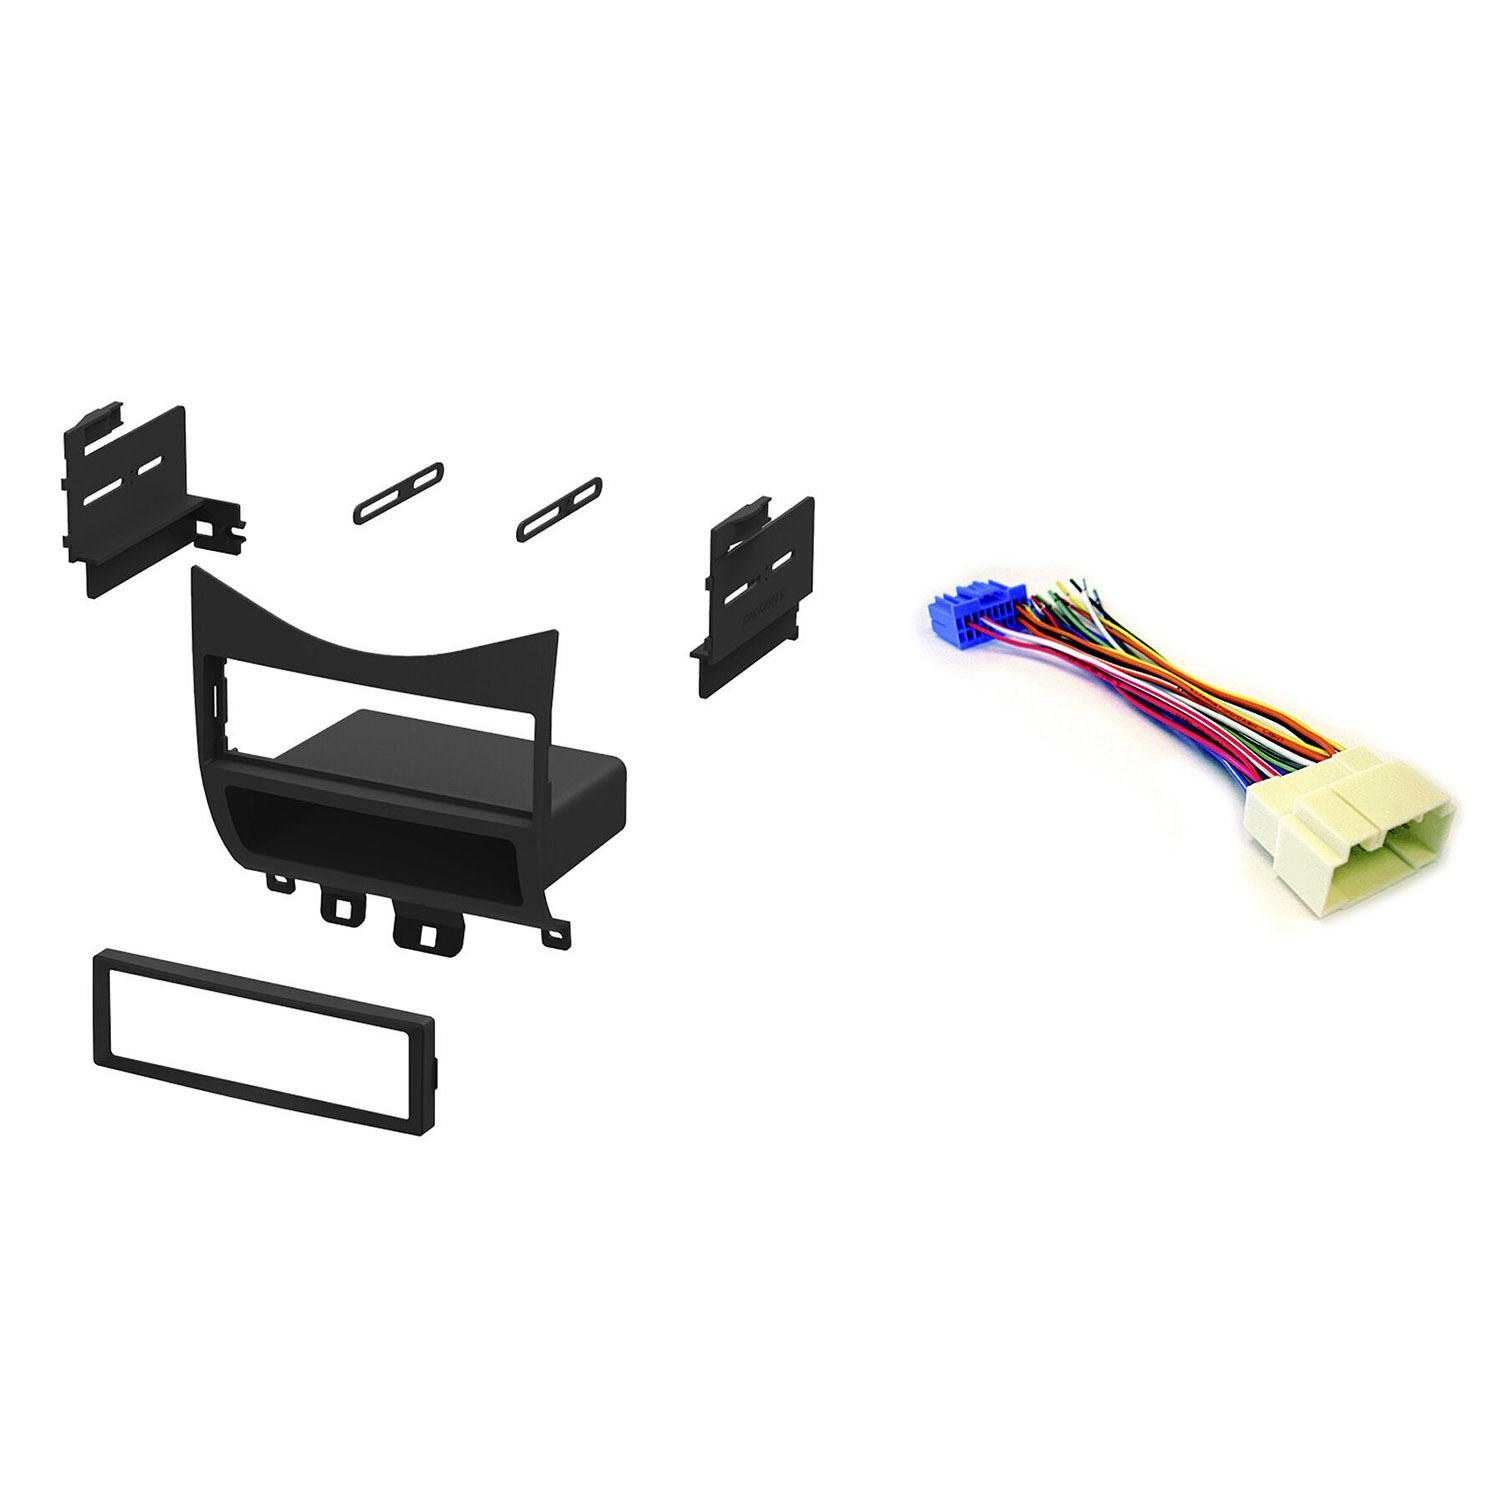 Honda Wiring Harness Kit Electrical Diagrams 19942002 Accord Curt T Connector 55336 Xscorpion 03 07 Car Stereo Mount Dash Xr650r